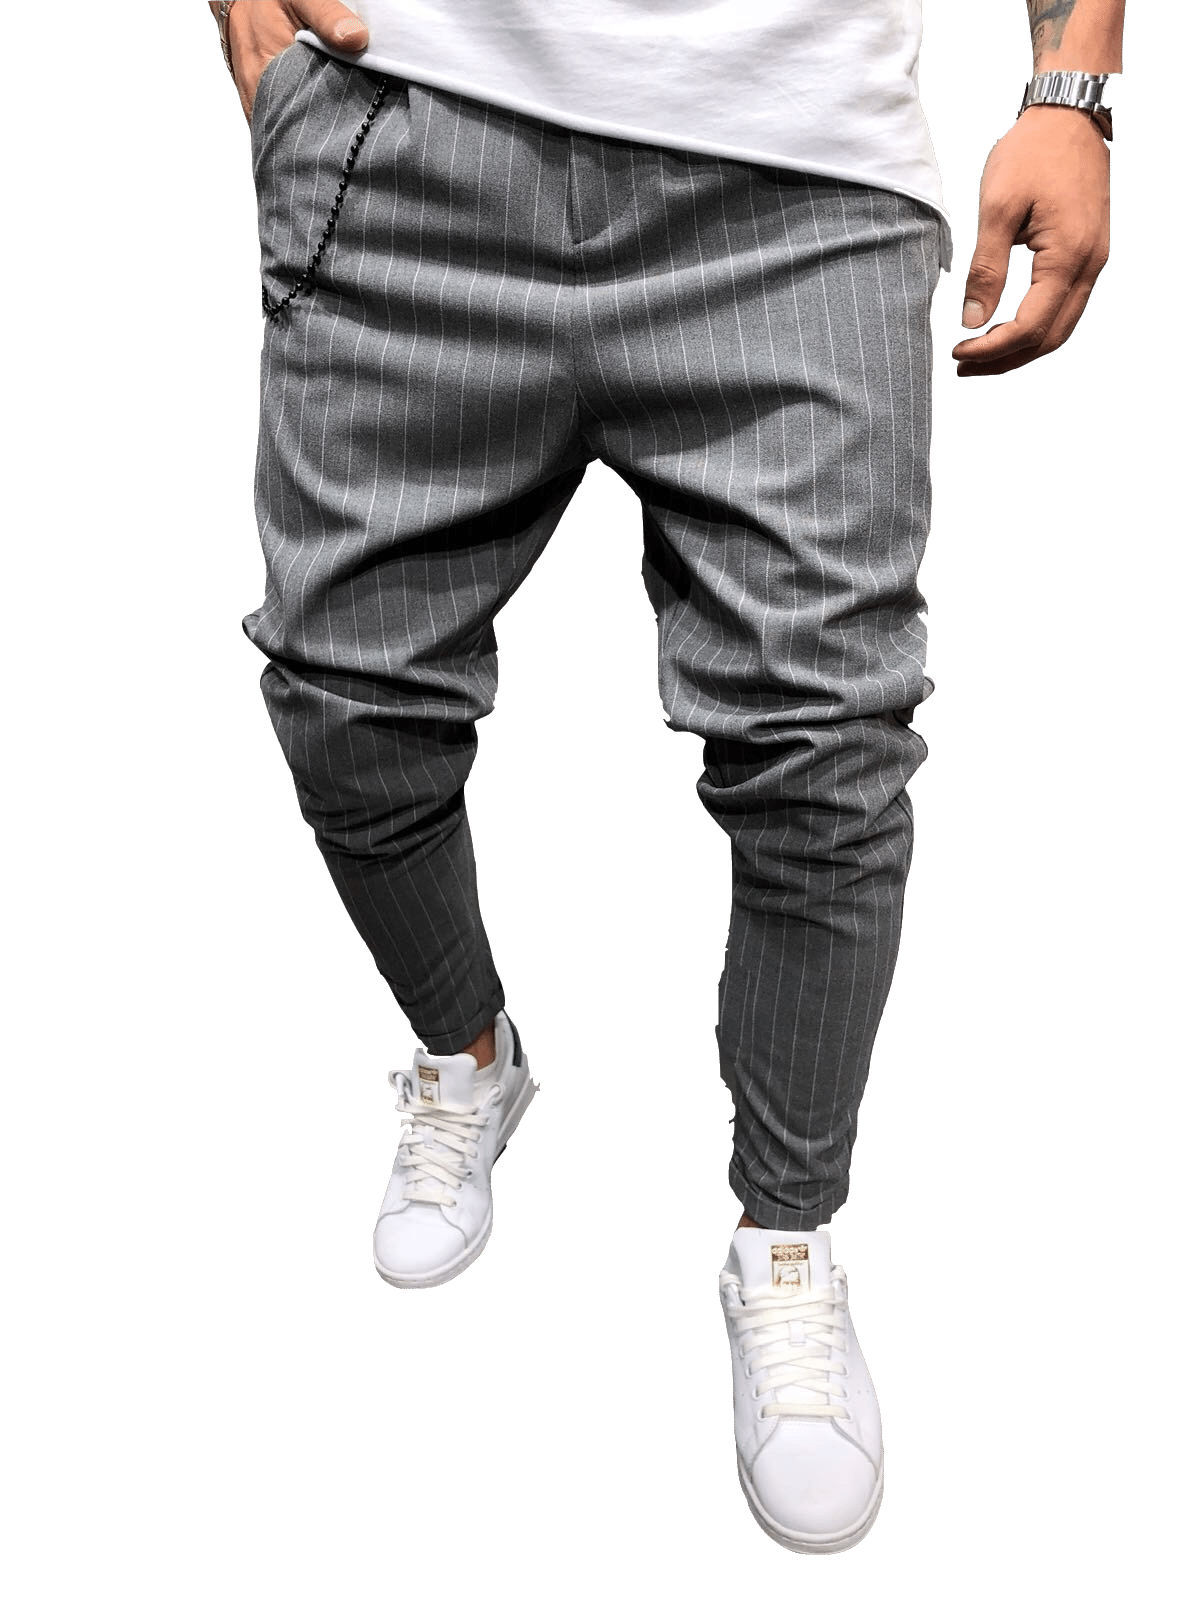 H818dfe43dc814dae98a778c8720f91f0X Spring Autumn Casual Men Sweat Pants Male Sportswear Casual Trousers Straight Pants Hip Hop High Street Trousers Pants Joggers